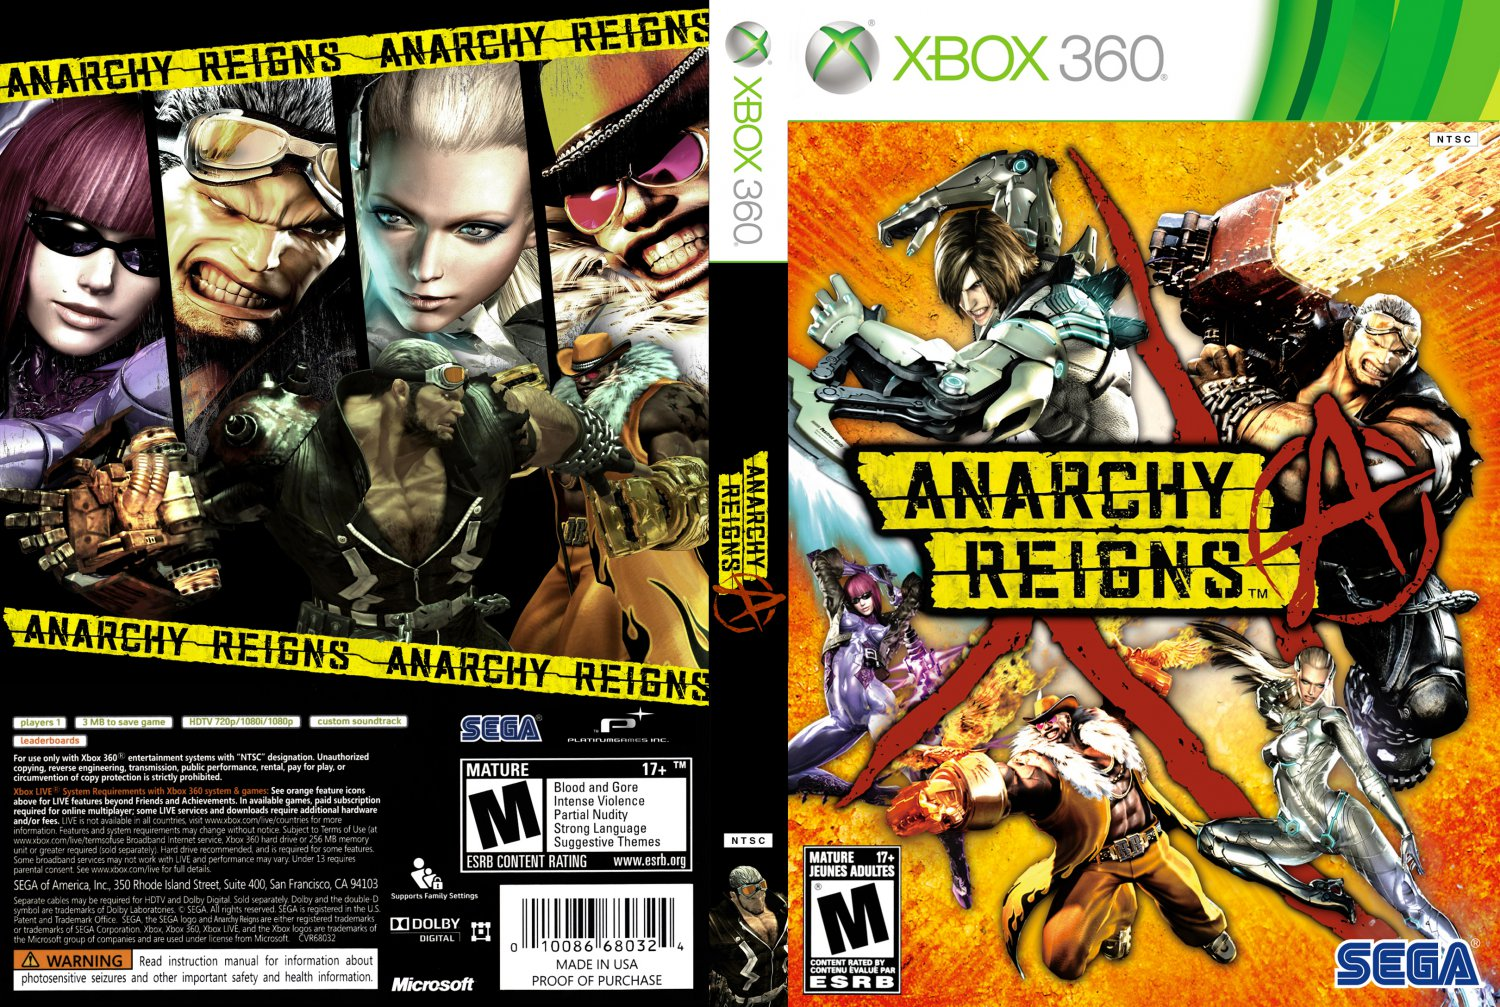 Anarchy Reigns XBOX360 Free Download Xbox 360 Game Covers Download